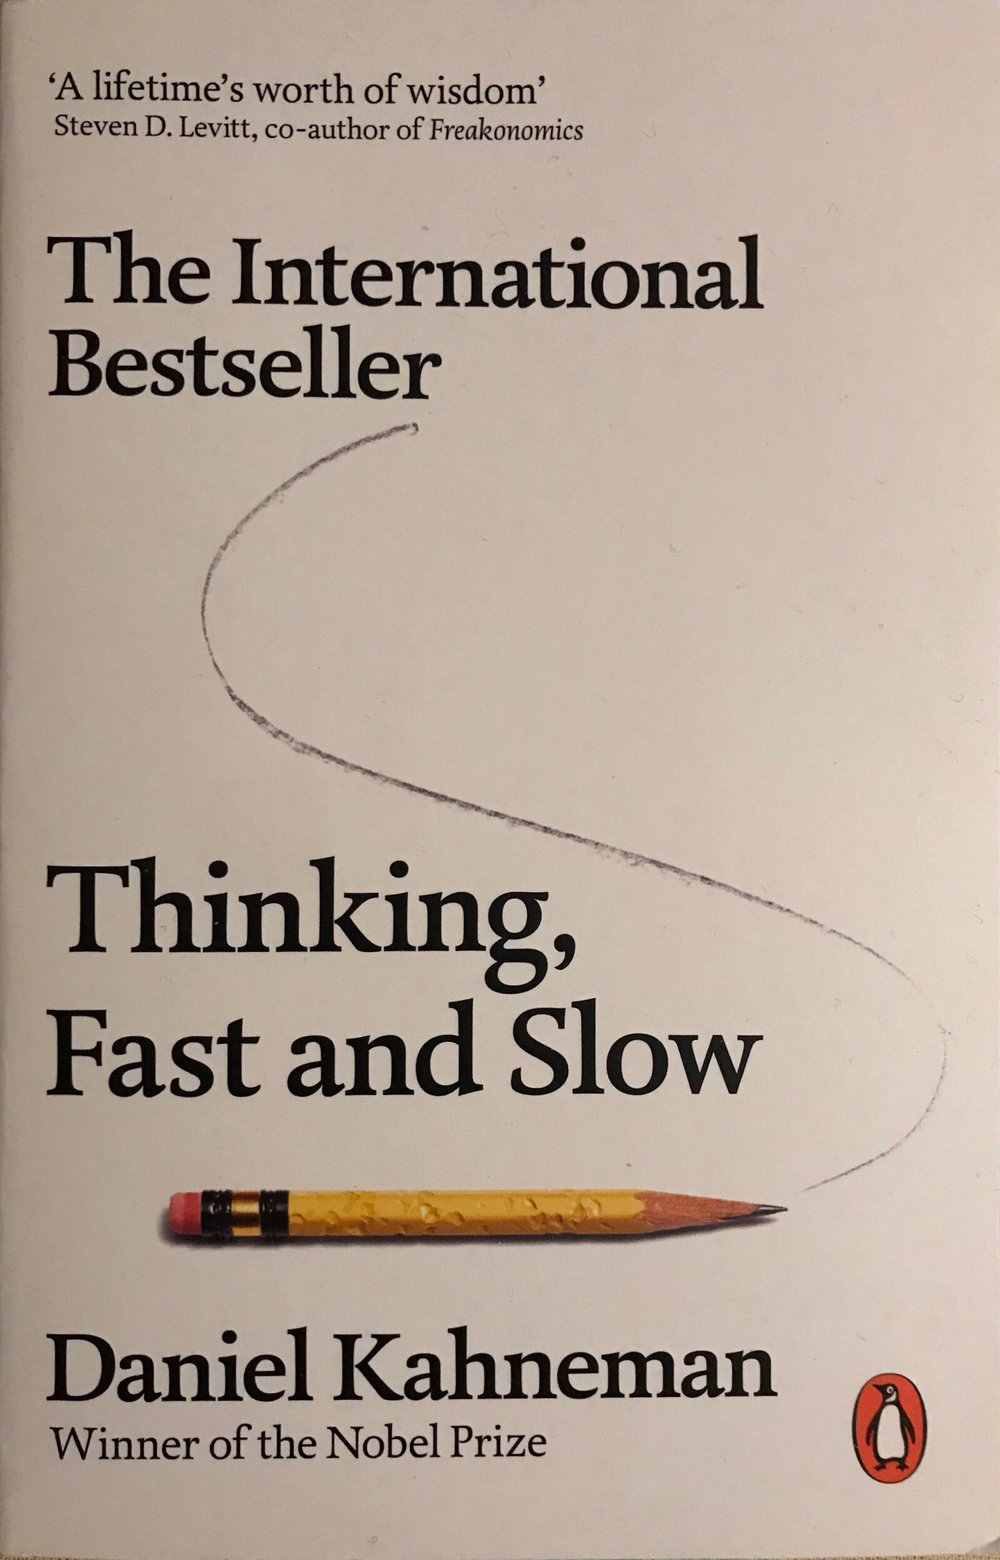 Thinking Fast and Slow  by  Ged Carroll , used under  CC BY 2.0